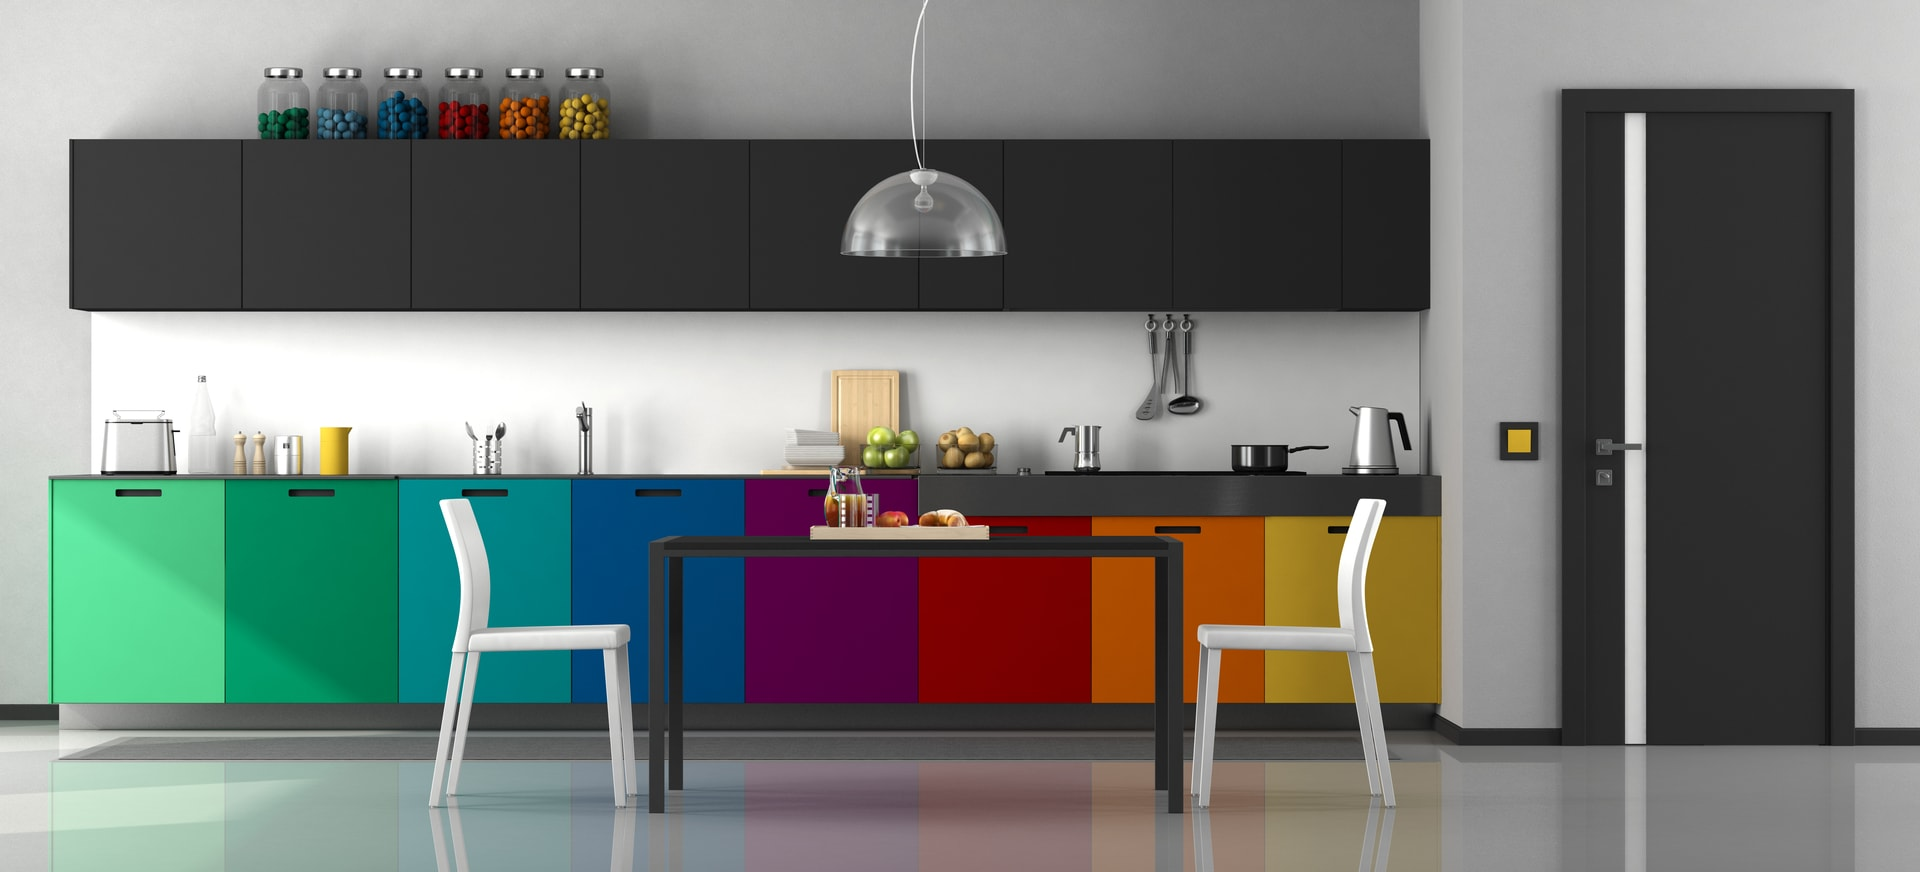 Top Trending color schemes for kitchens